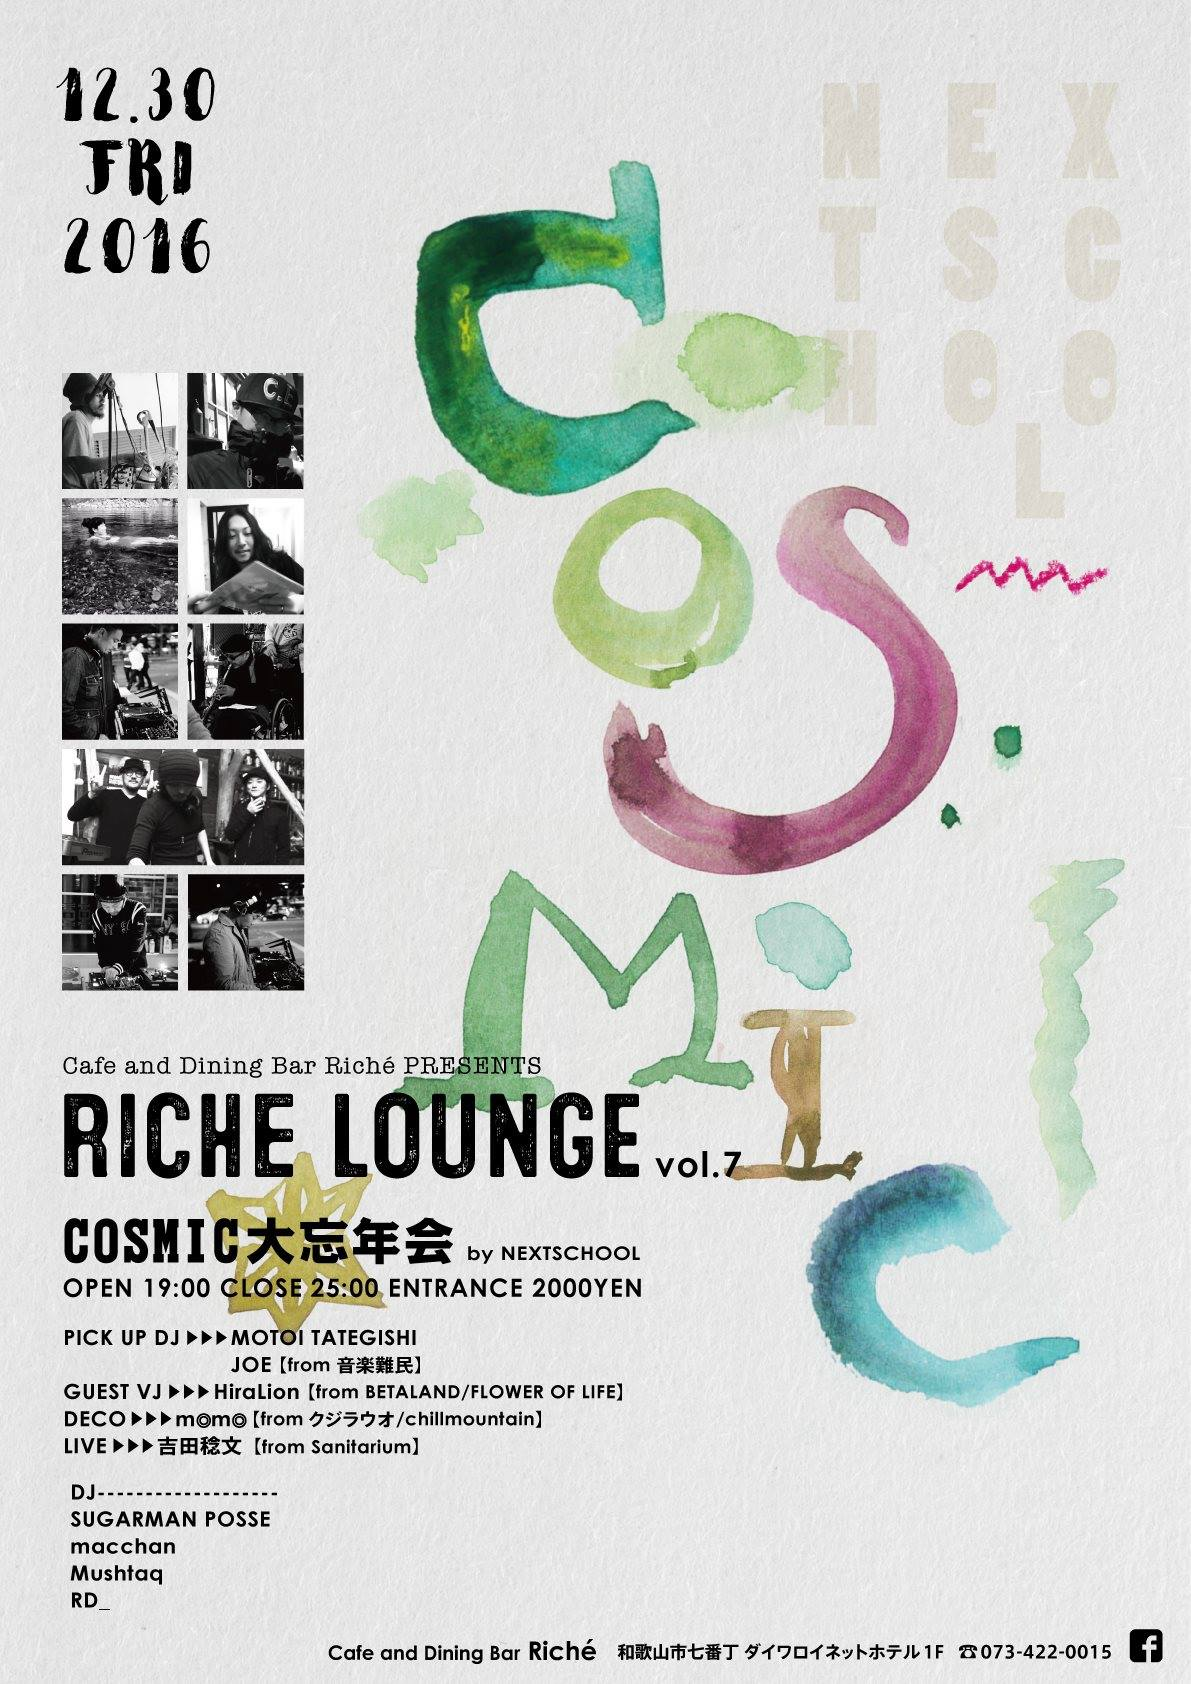 2016/12/30 COSMIC 大忘年会 by NEXTSCHOOL @RICHE LOUNGE